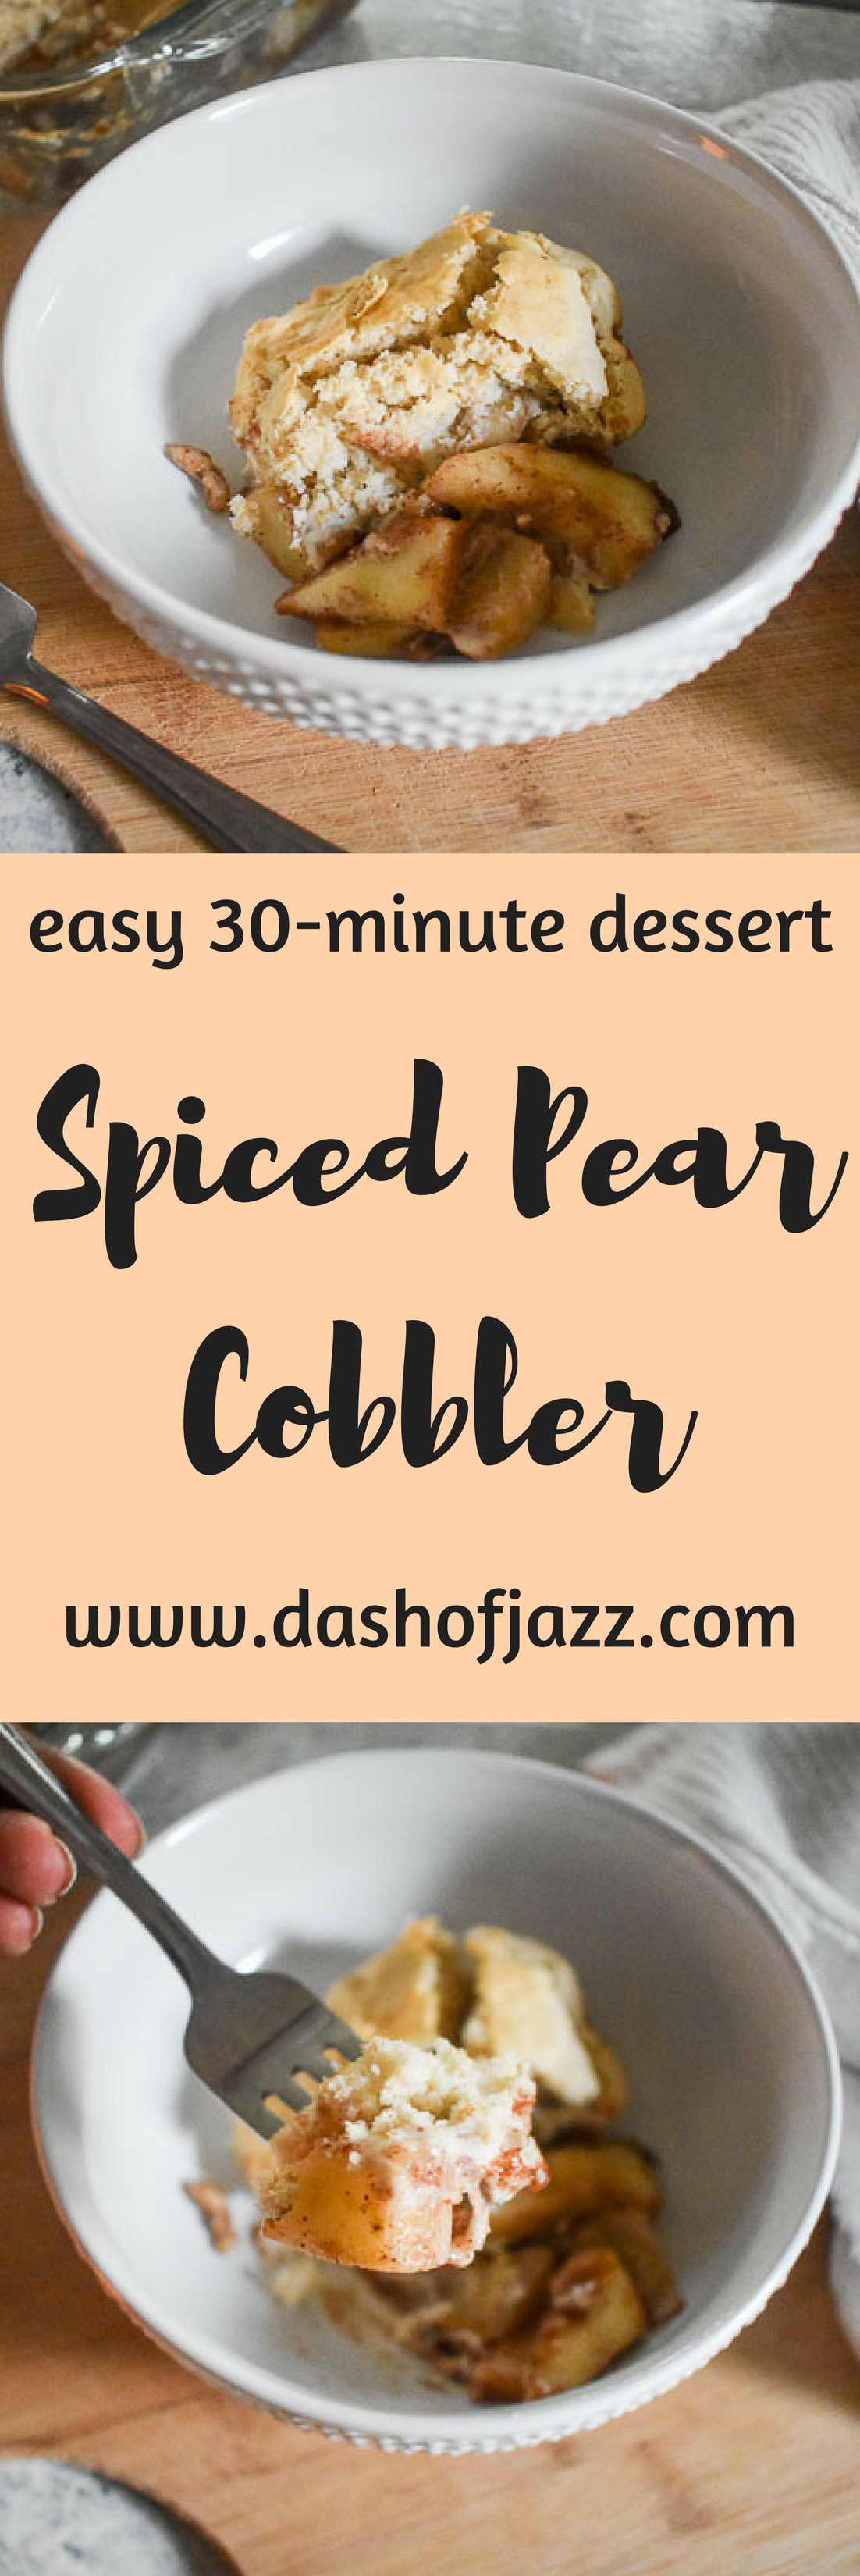 Simple Spiced Pear Cobbler is made with an easy scratch filling of crunchy pears and warm spices, and lightly sweet bisquick biscuit topping. Recipe by Dash of Jazz #dashofjazzblog #pearrecipes #pearrecipeseasy #pearrecipesdessert #winterdessertrecipes #pearcobblereasy